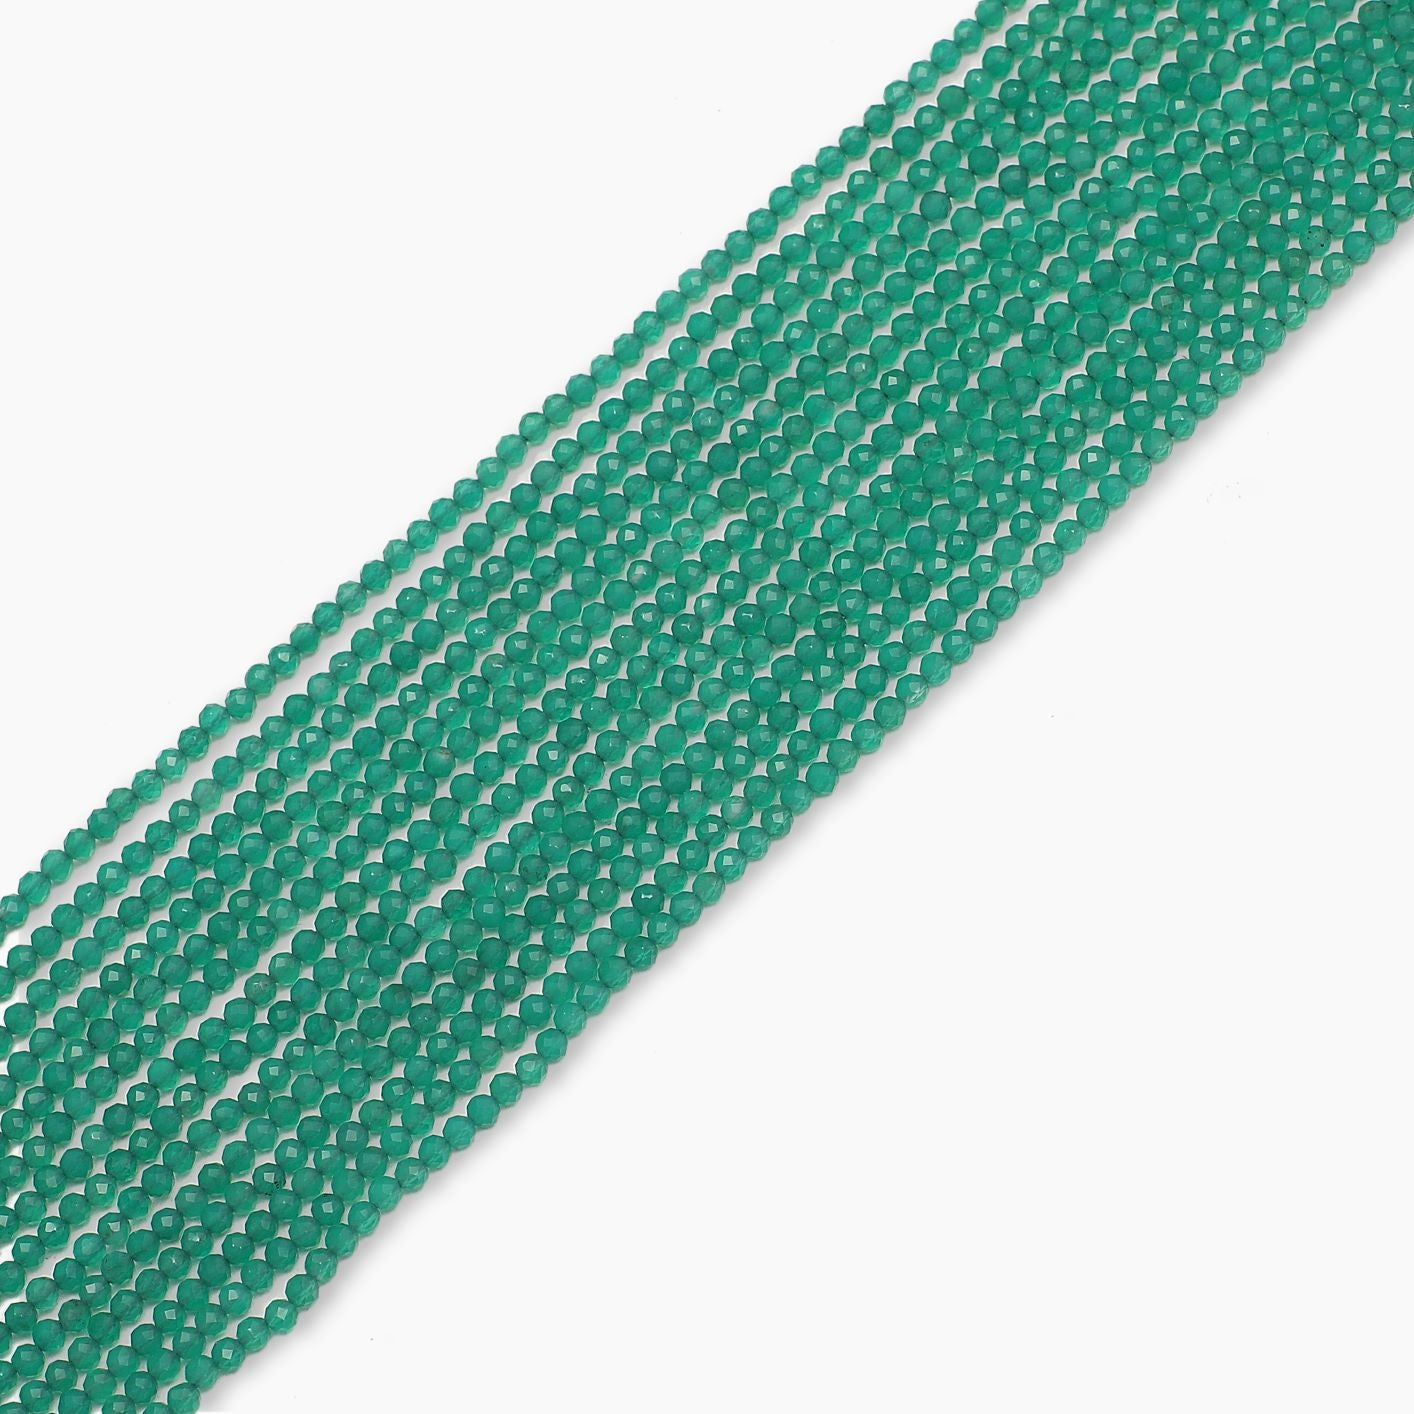 Green Onyx Diamond Cutting Beads-Sold Per Strand